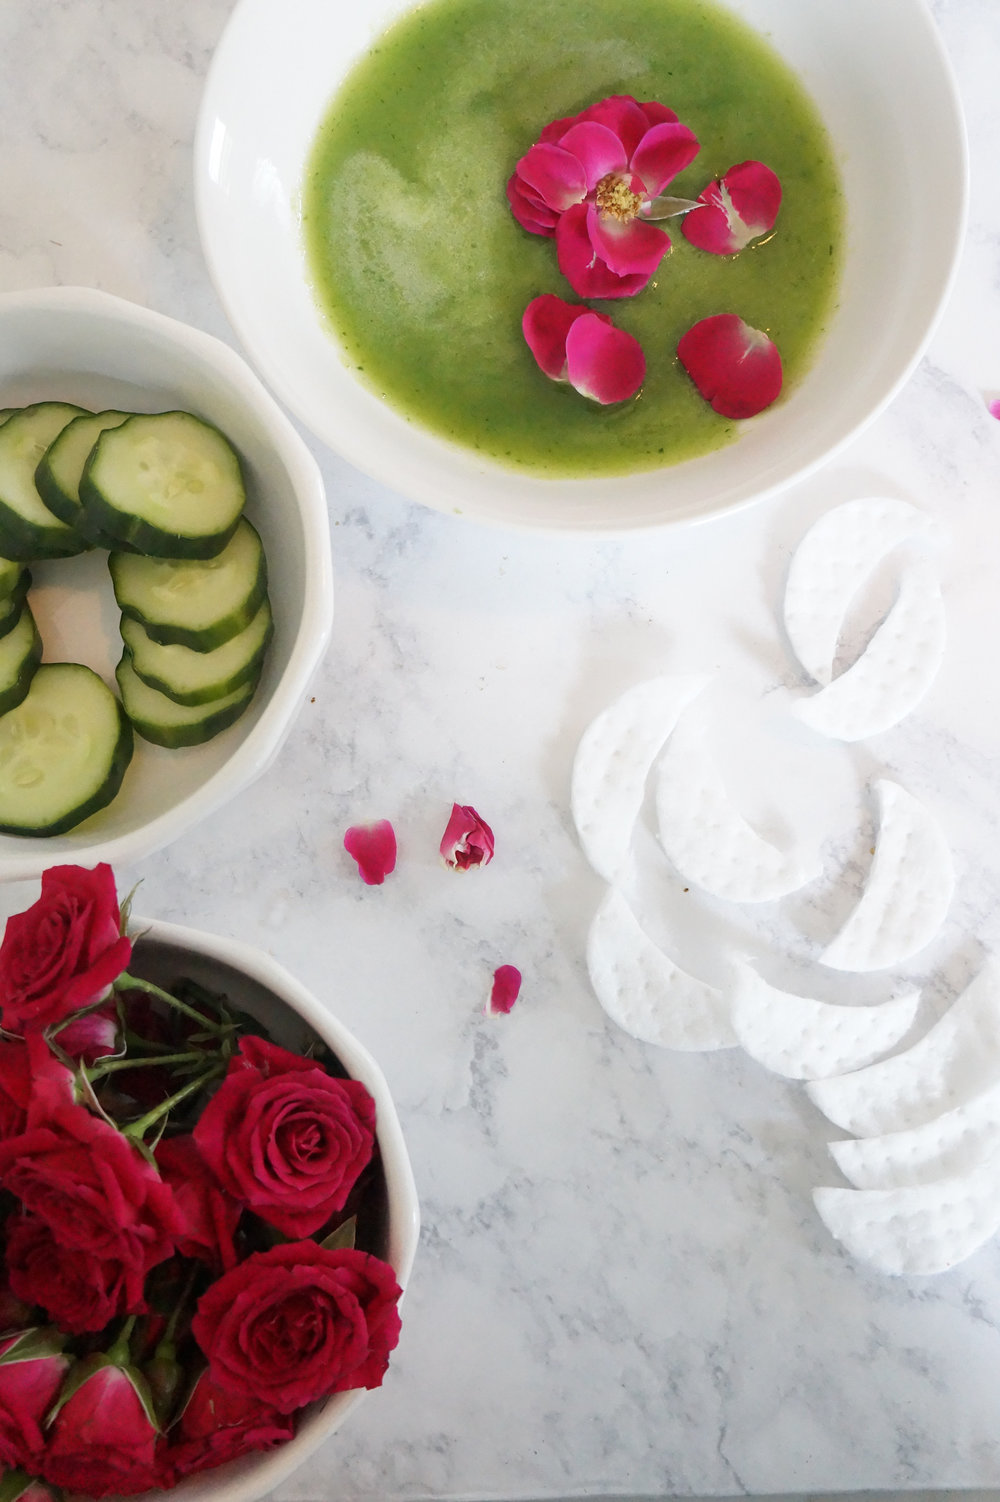 Andrea Fenise Memphis Fashion Blogger shares a DIY Cucumber Rosewater Eye Mask